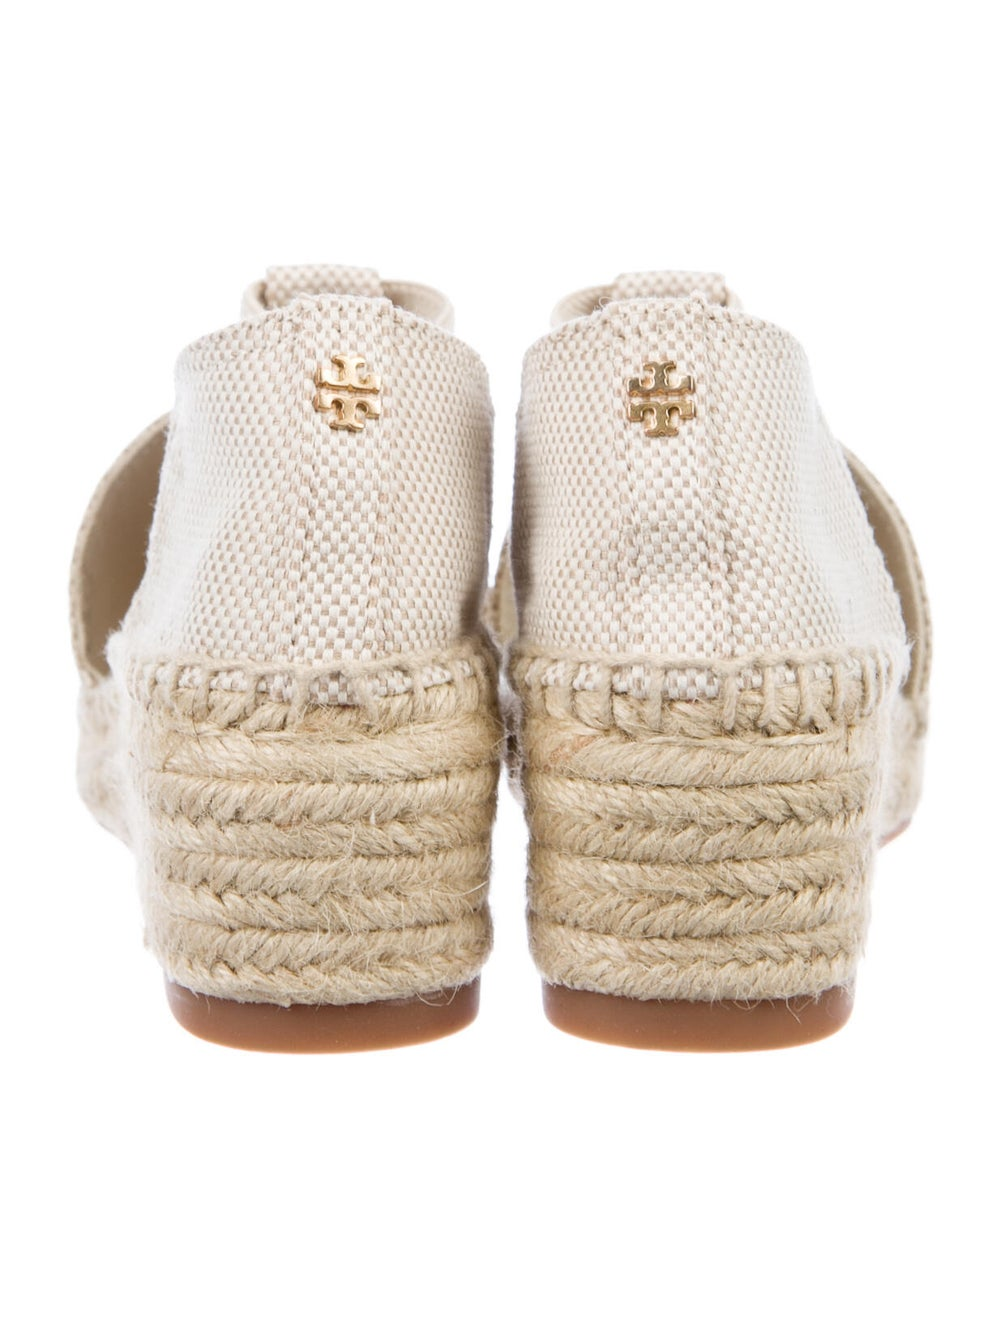 Tory Burch Pumps - image 4